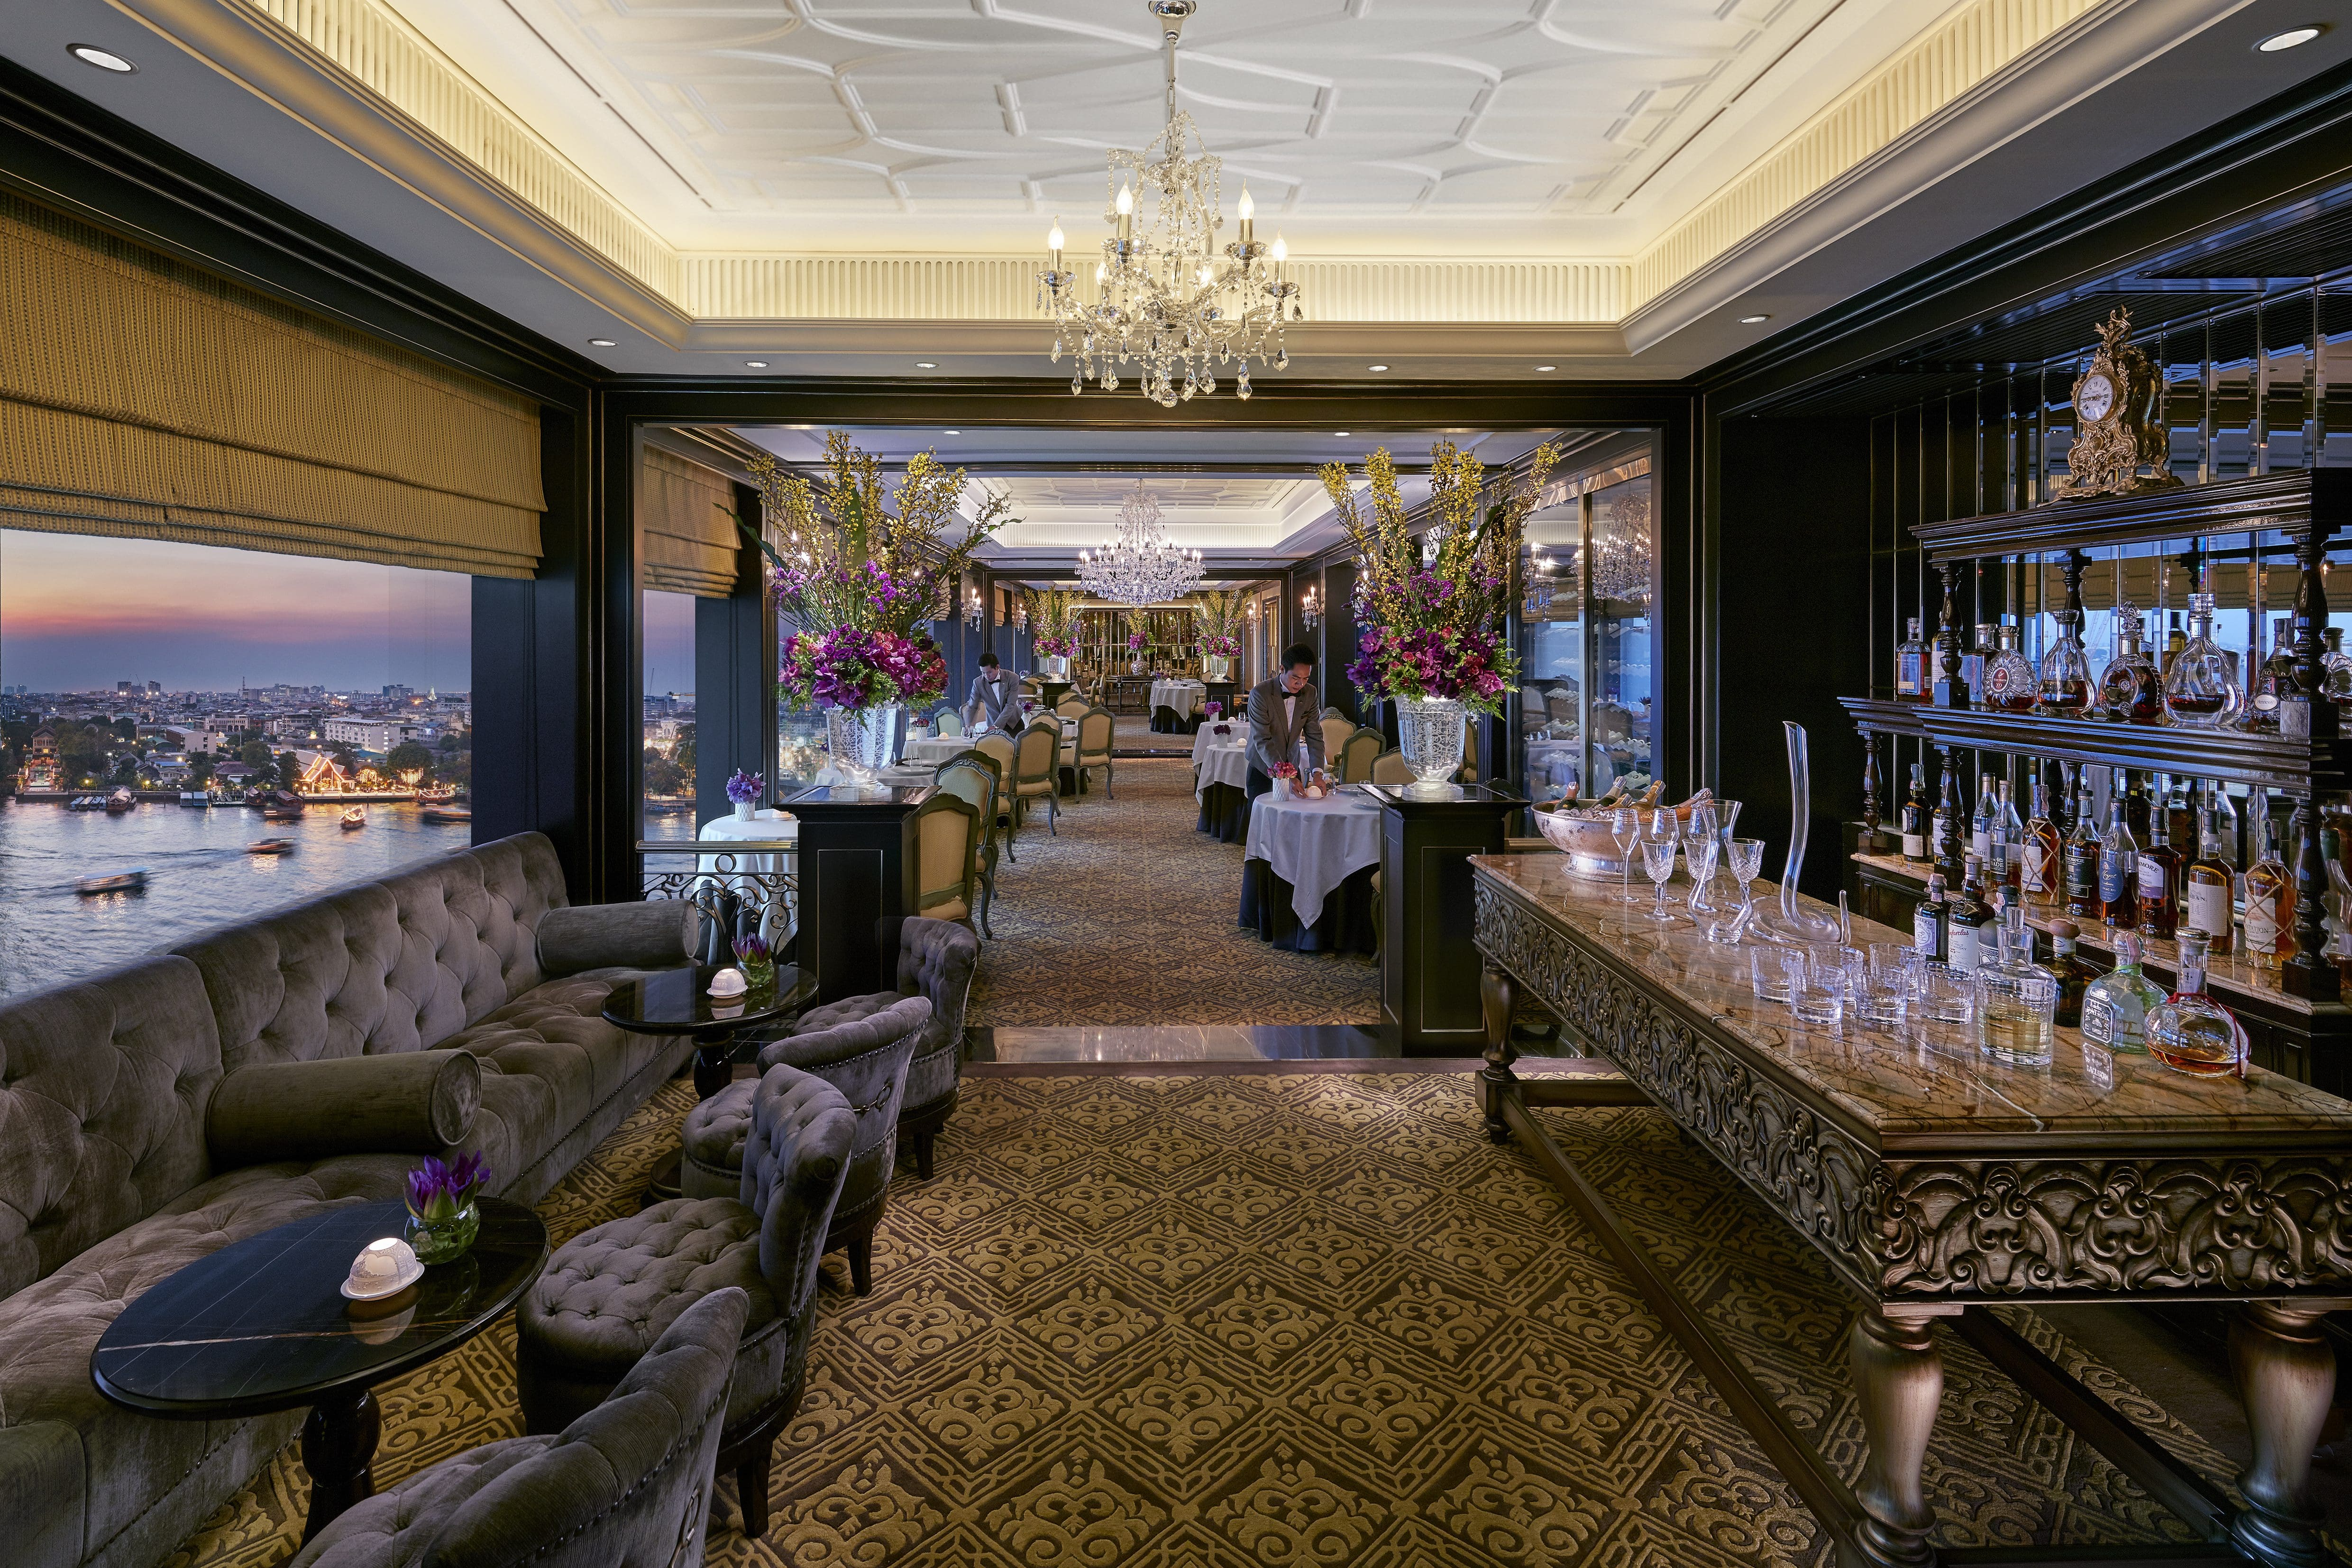 Le Normandie Restaurants On The Chao Phraya River